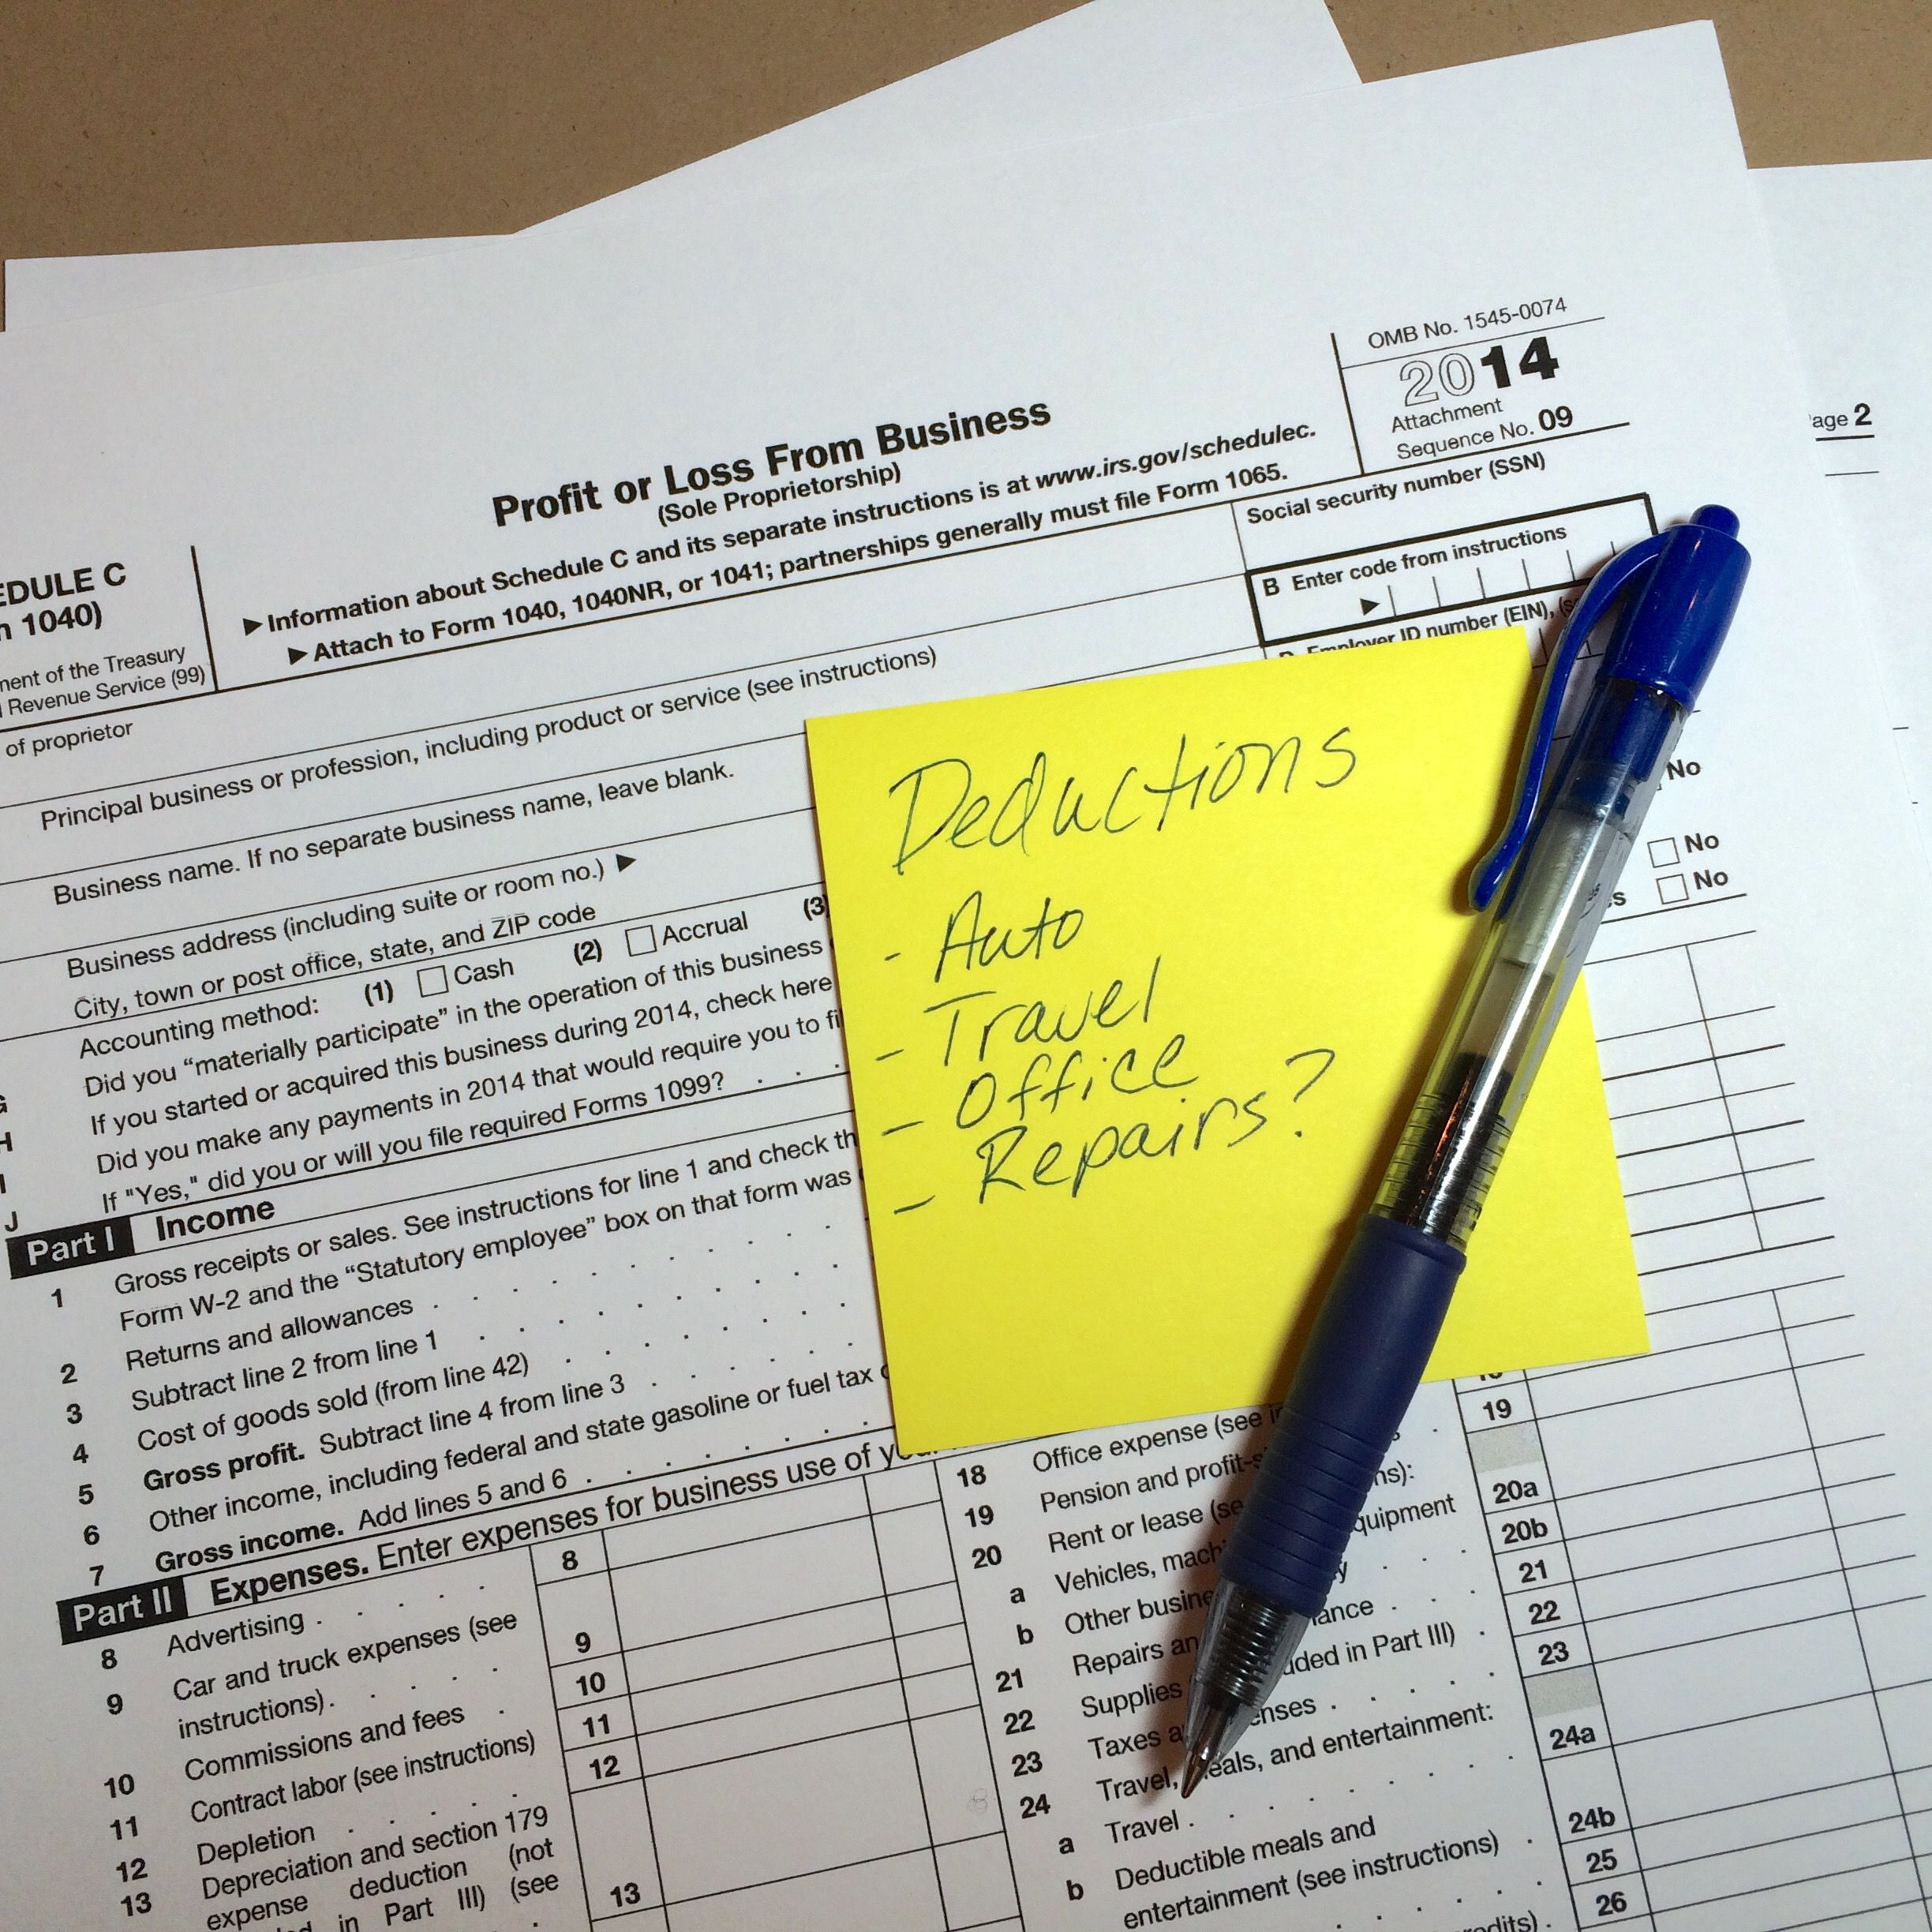 Filing Small Business Taxes on Schedule C